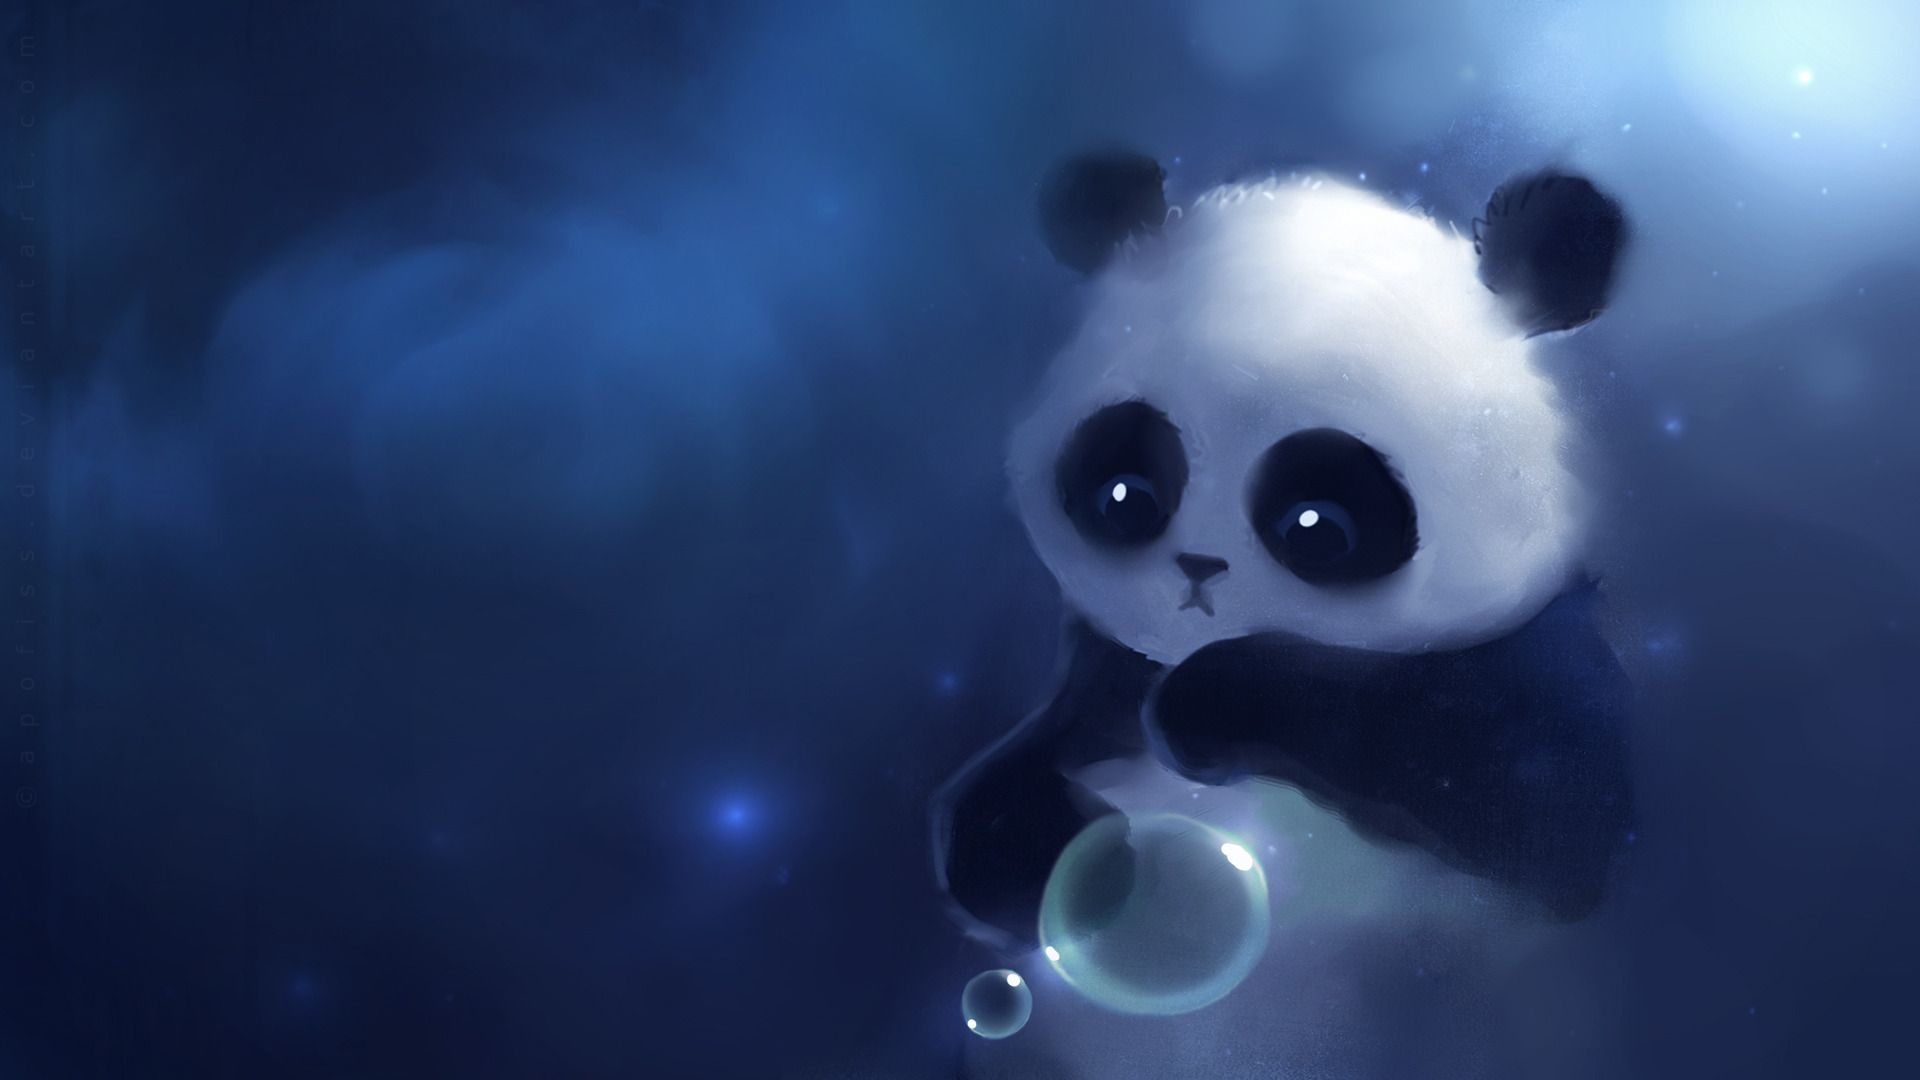 Cute-Panda-Full-HD-p-Best-HD-Cute-Panda-Pics-wallpaper-wpc5803848